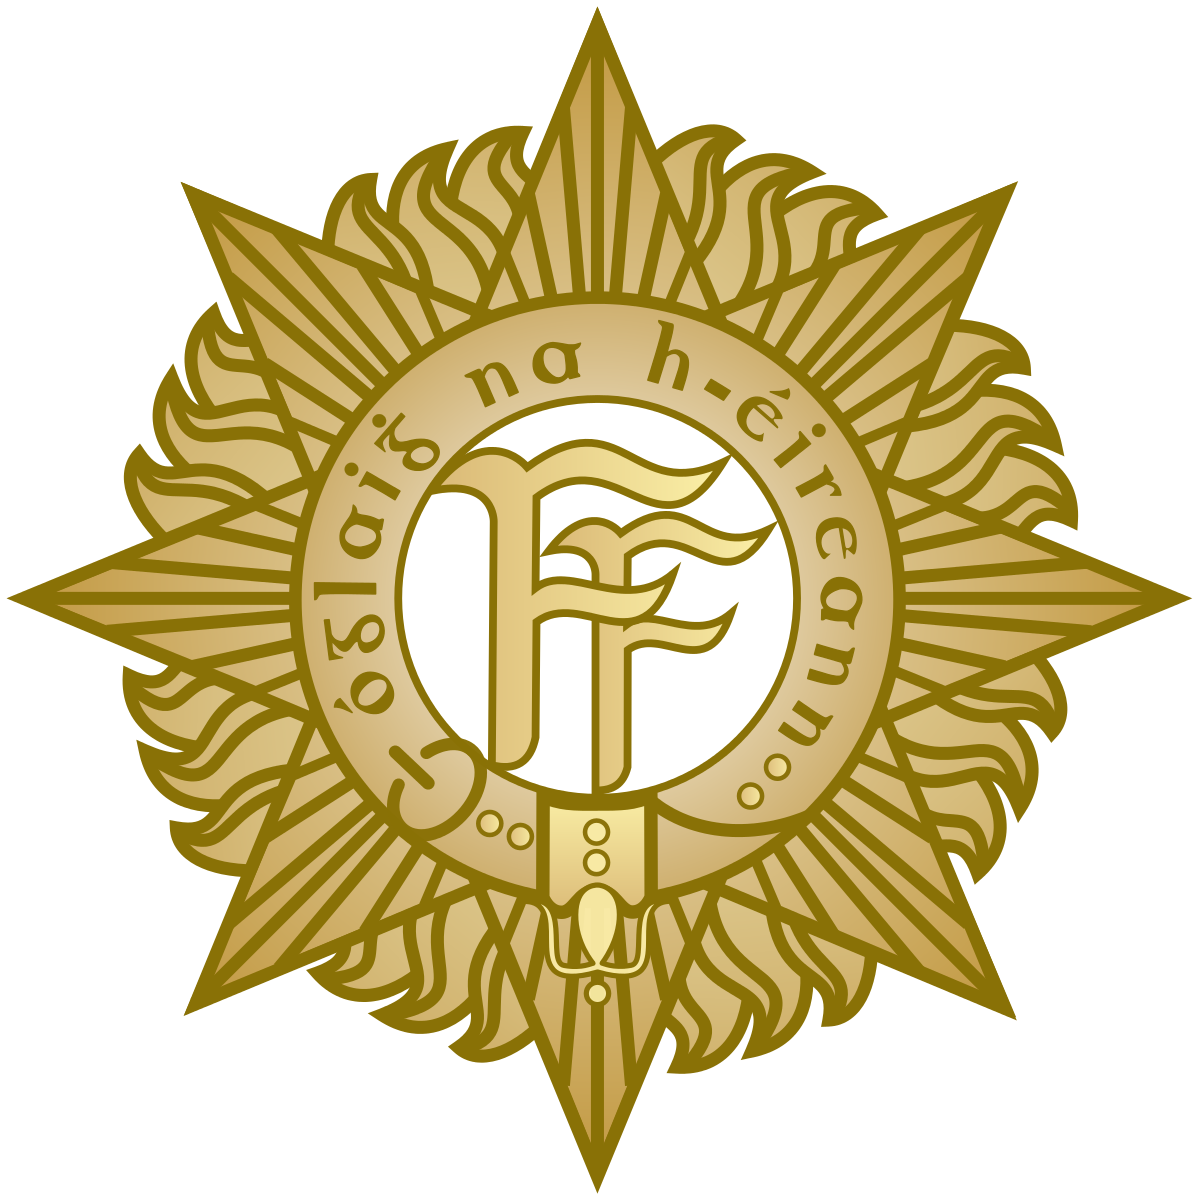 Military crest png. Army reserve ireland wikipedia